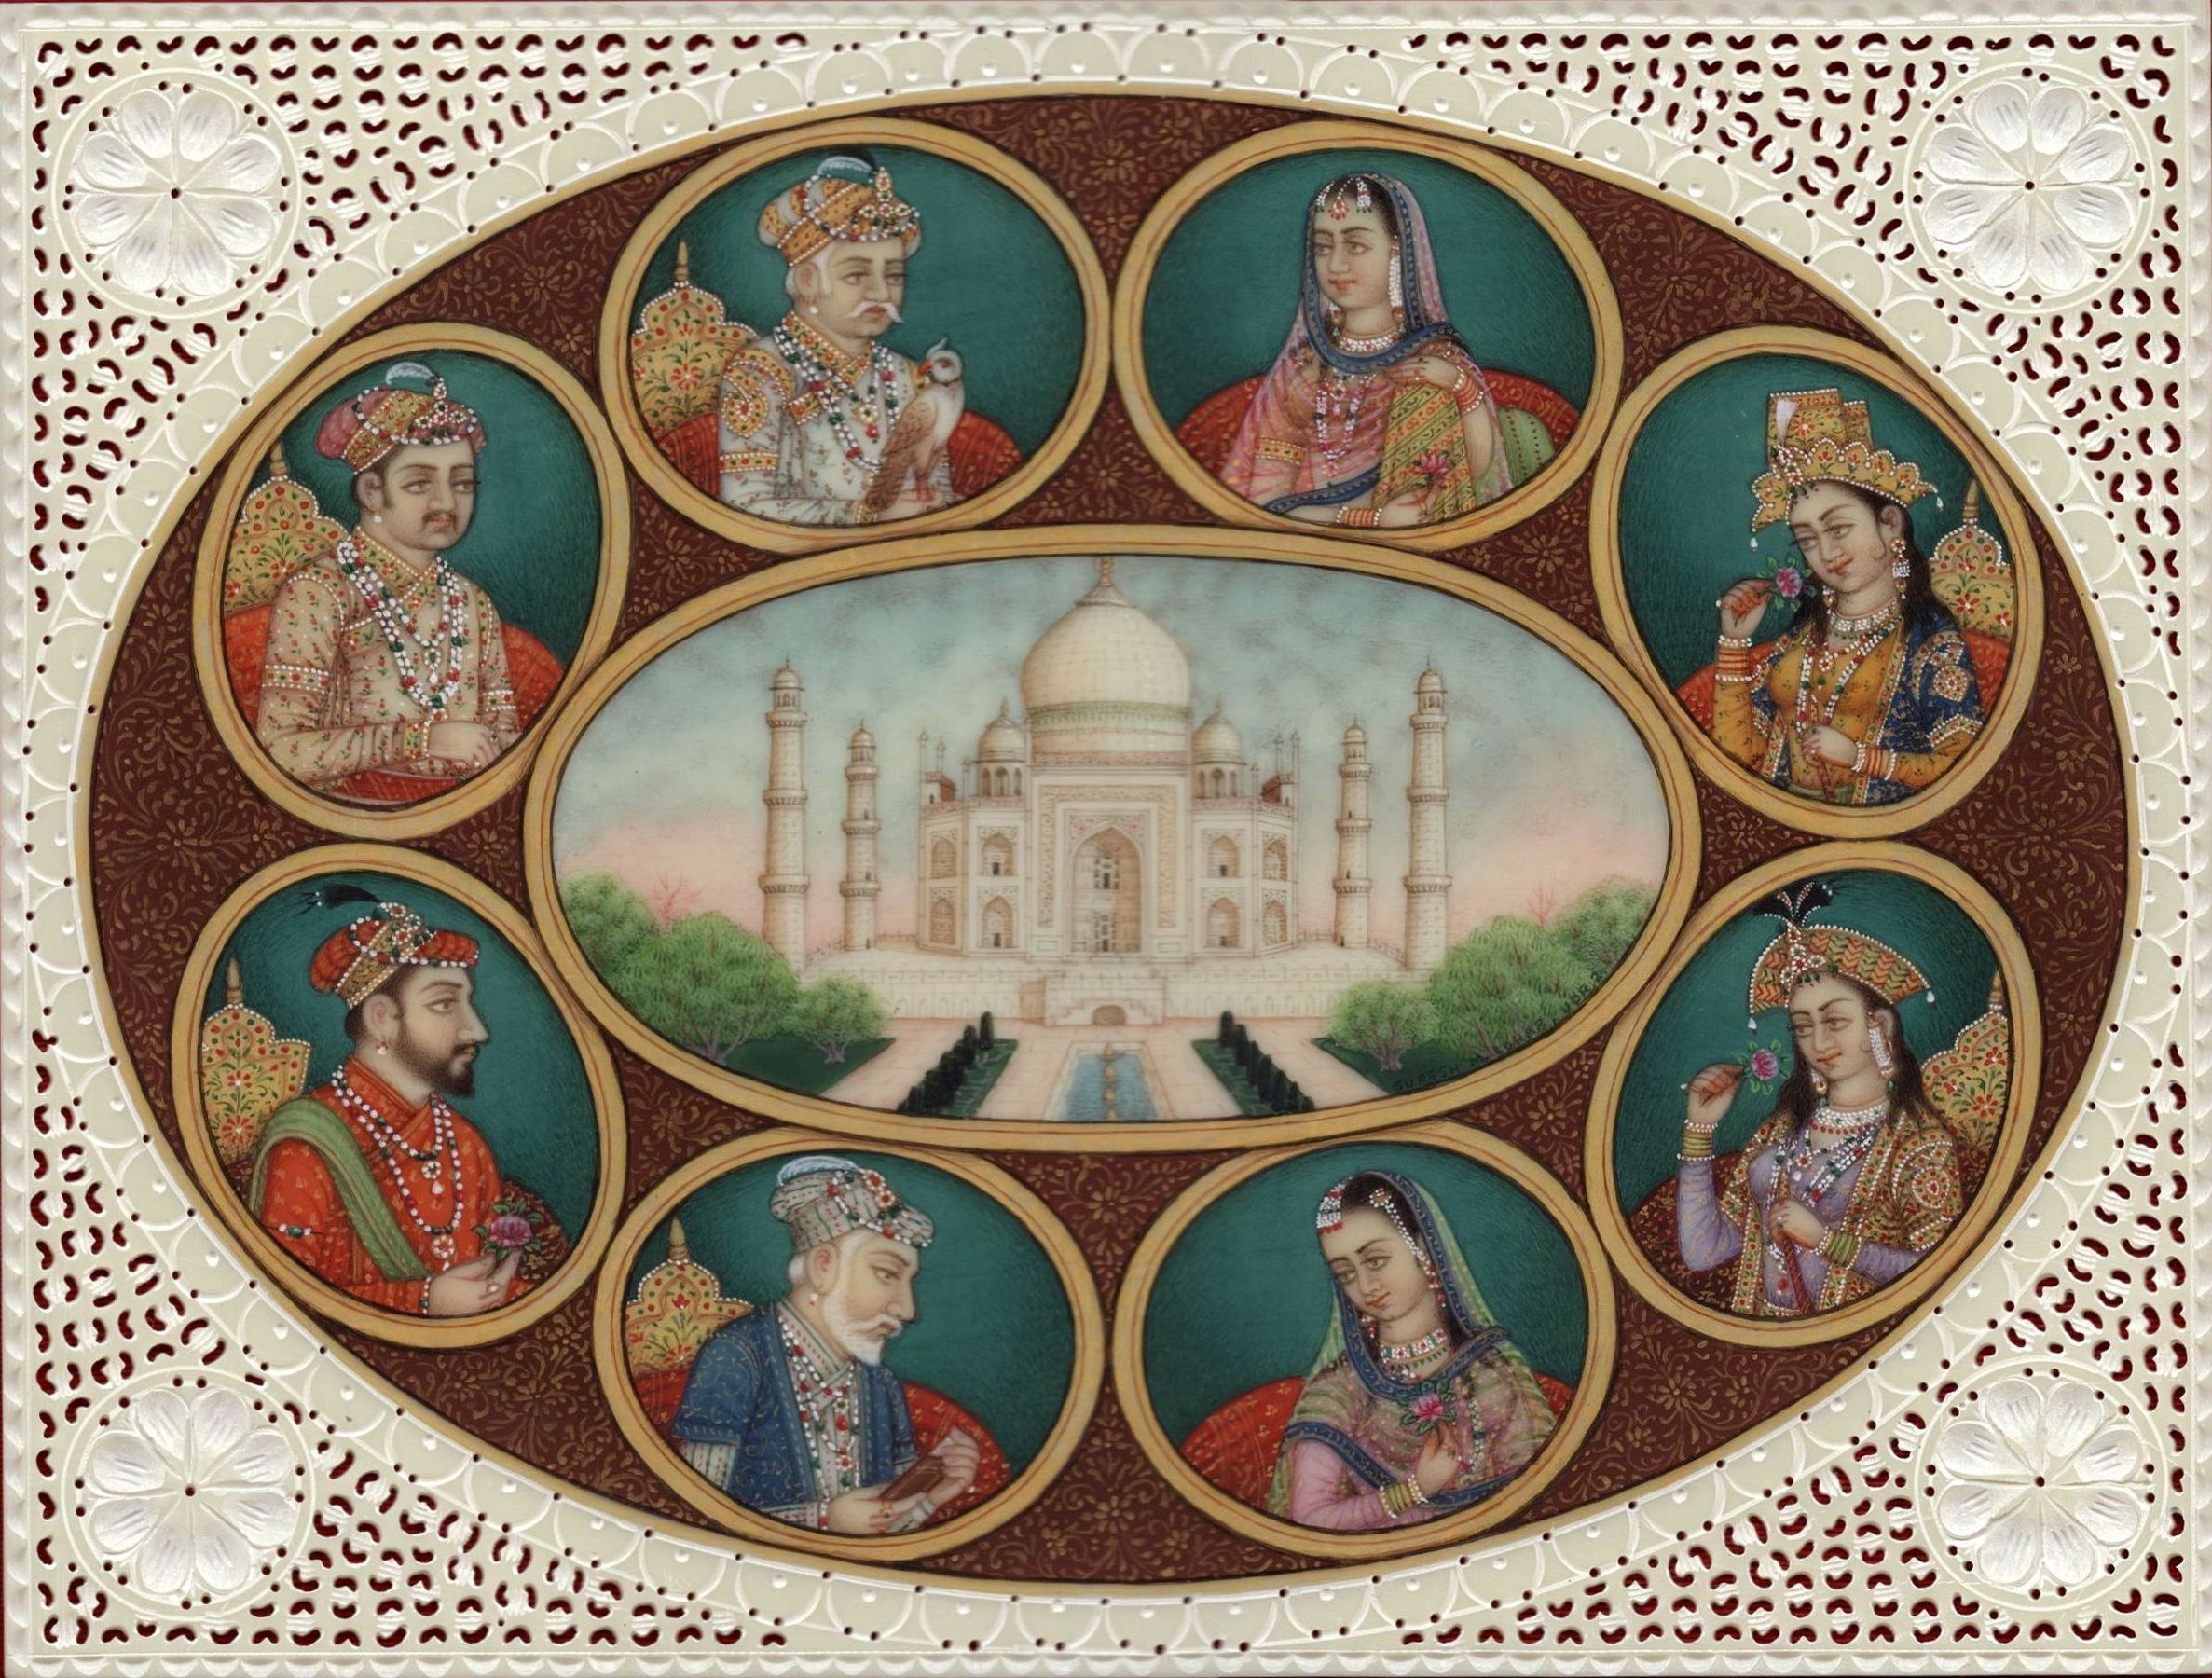 Mughal Dynasty Miniature Art Handmade Mughal Empire Emperor Empress Painting